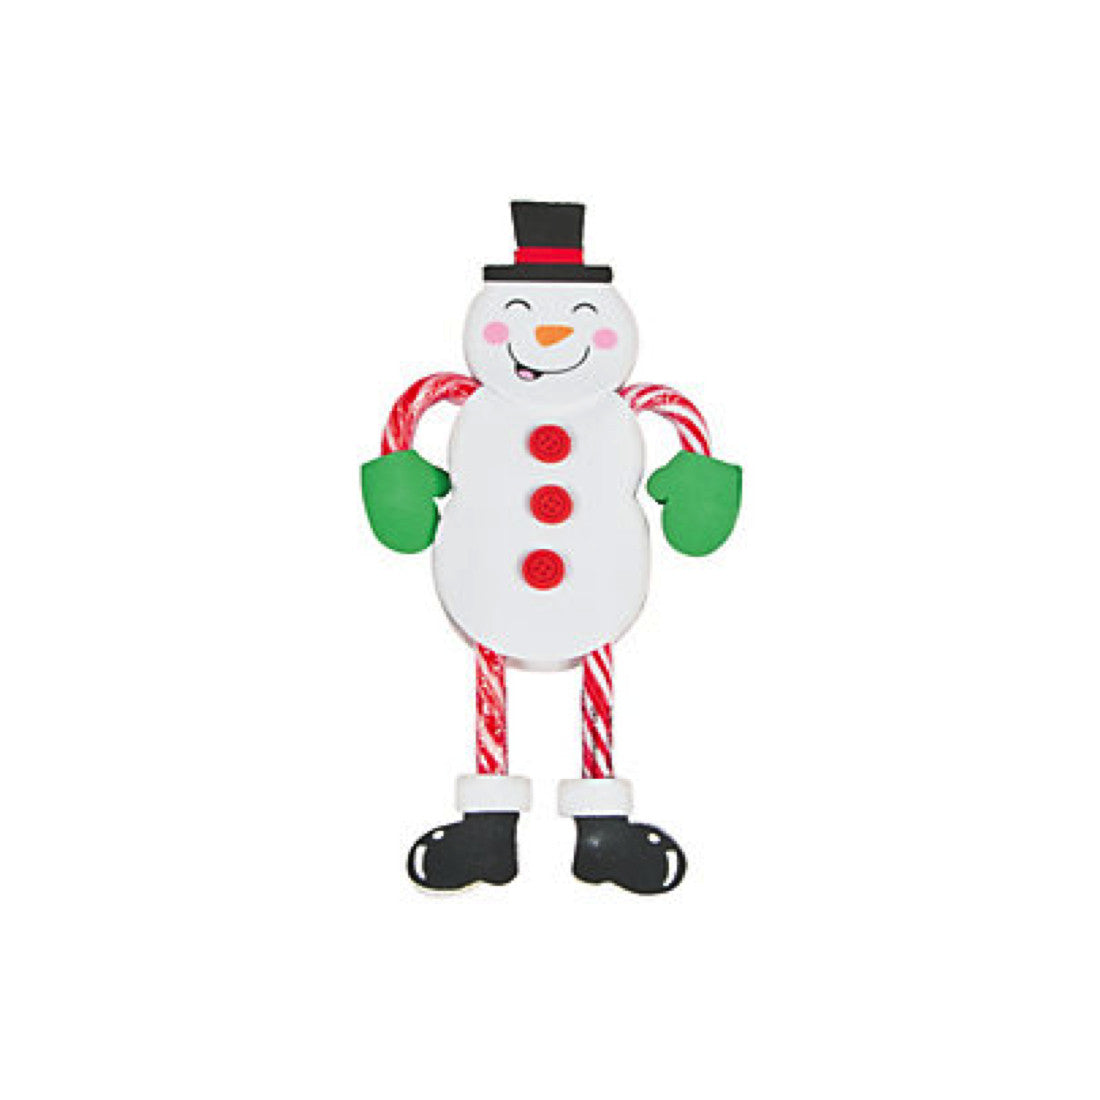 Snowman Candy Cane Character Craft Kit  - Makes 12 Ornaments